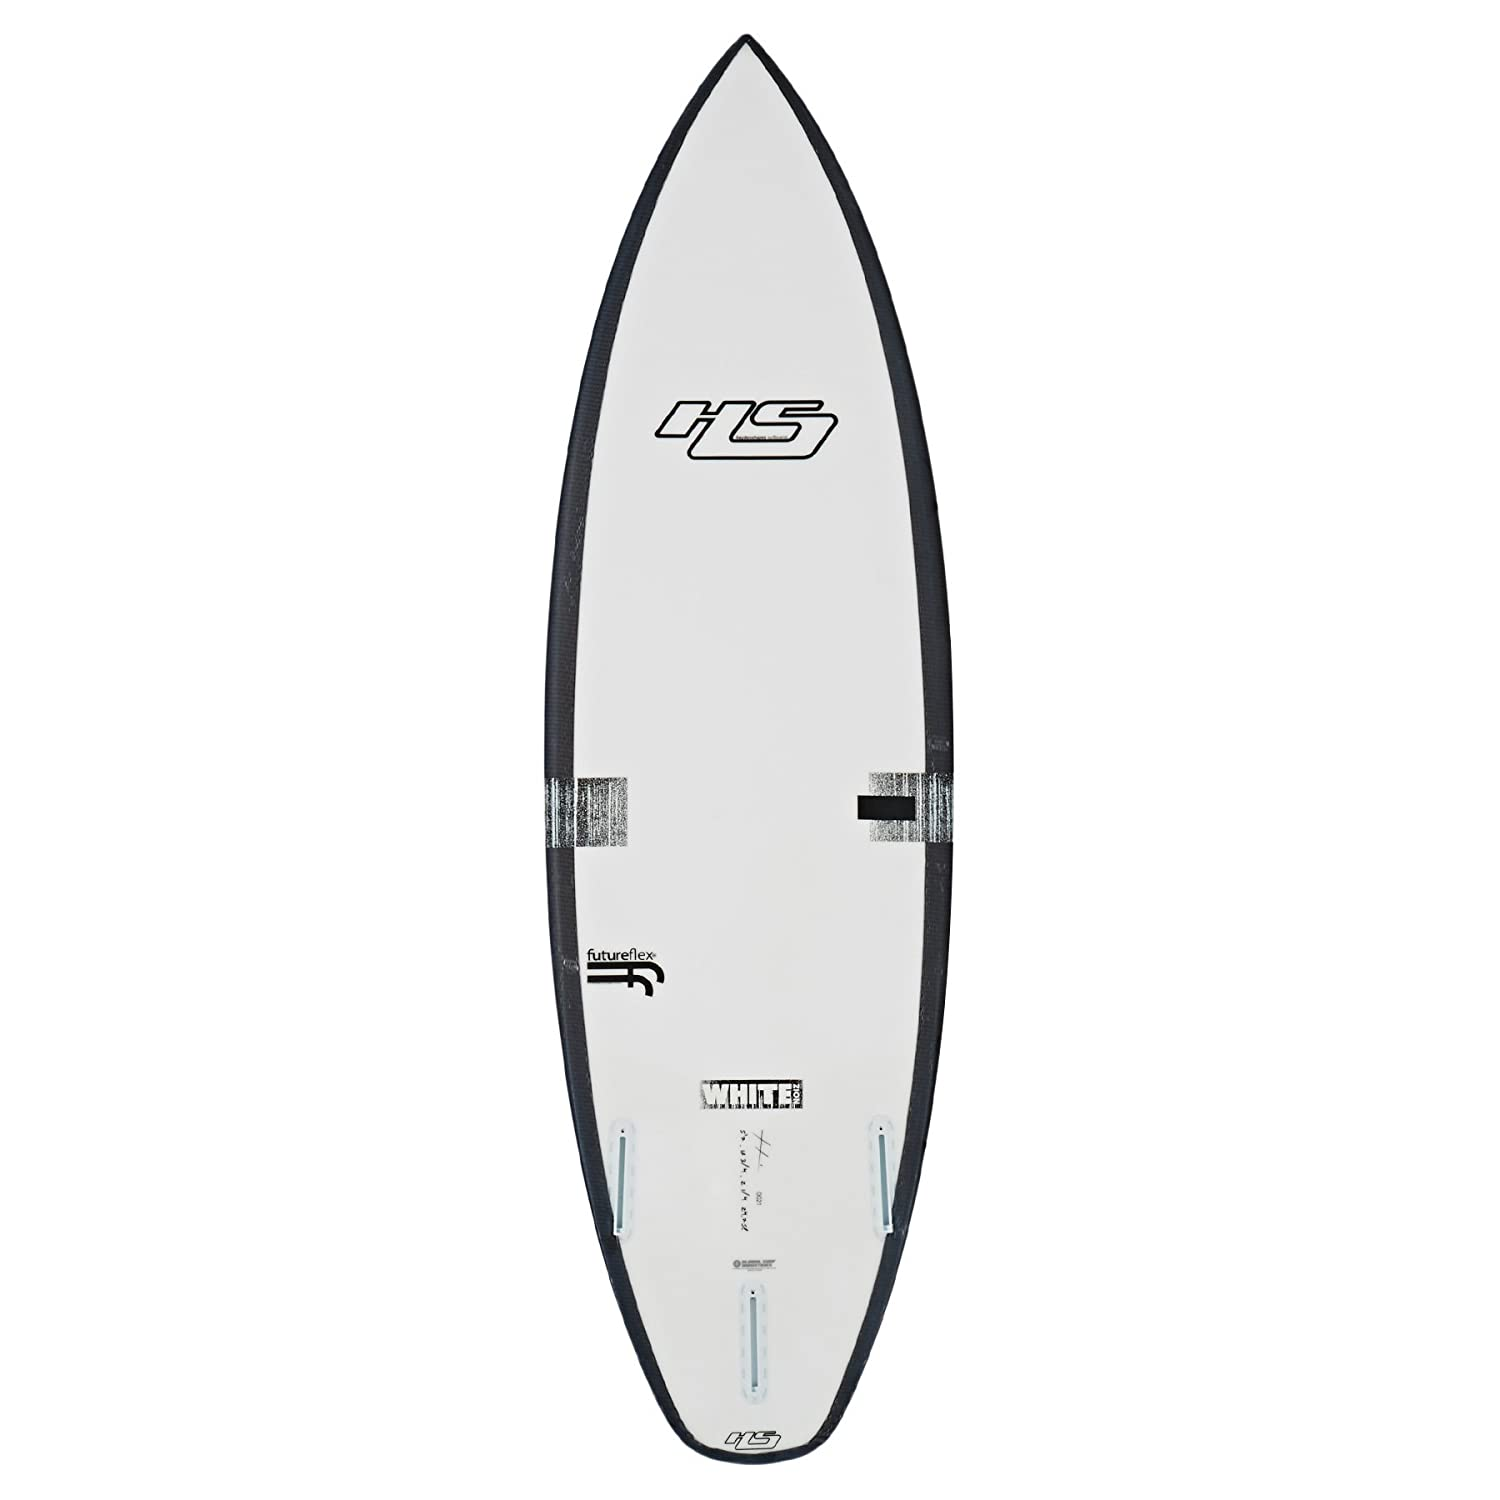 7S Super Fish 3 PE Tabla de Surf - White: Amazon.es: Deportes y aire libre